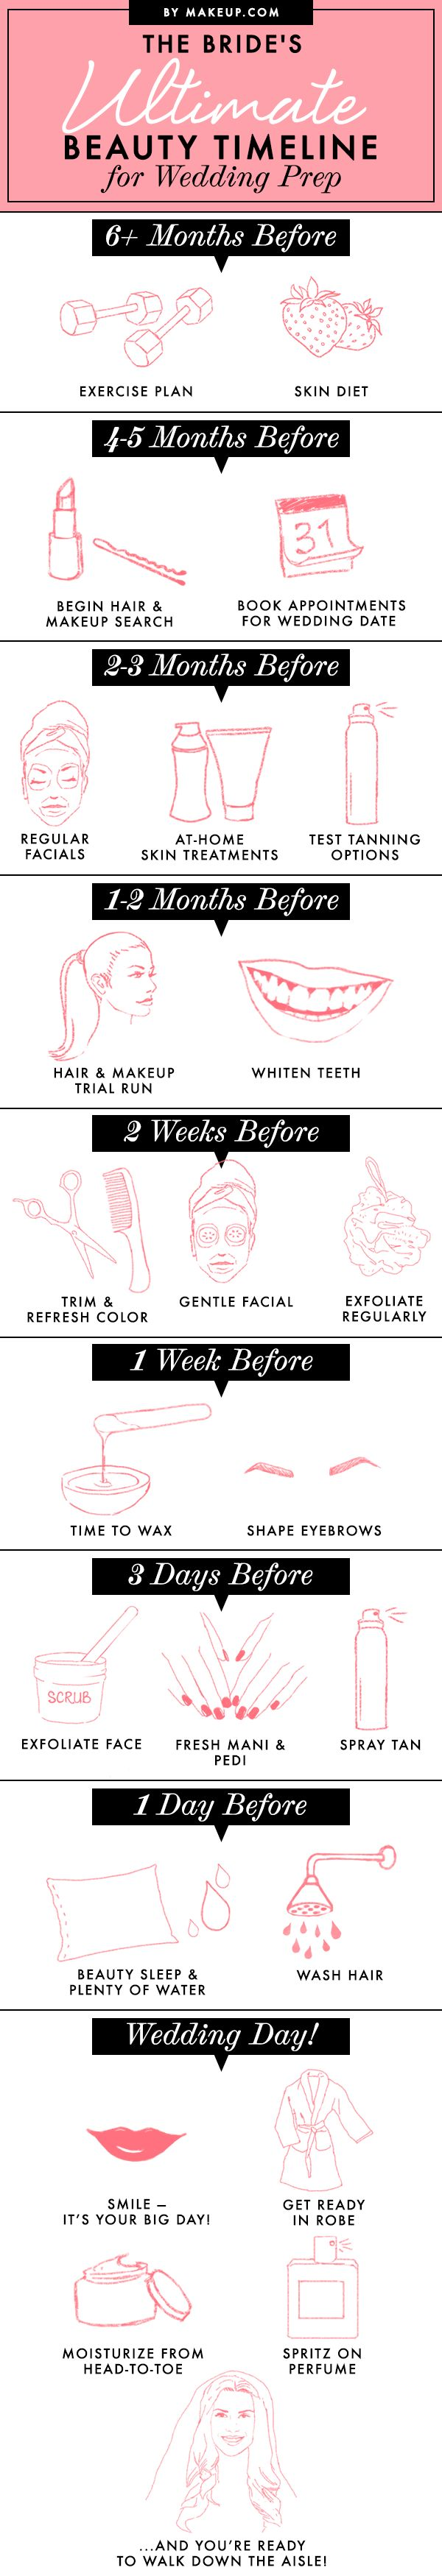 WEDLEB: The Bride's Ultimate Beauty Timeline for Wedding P...